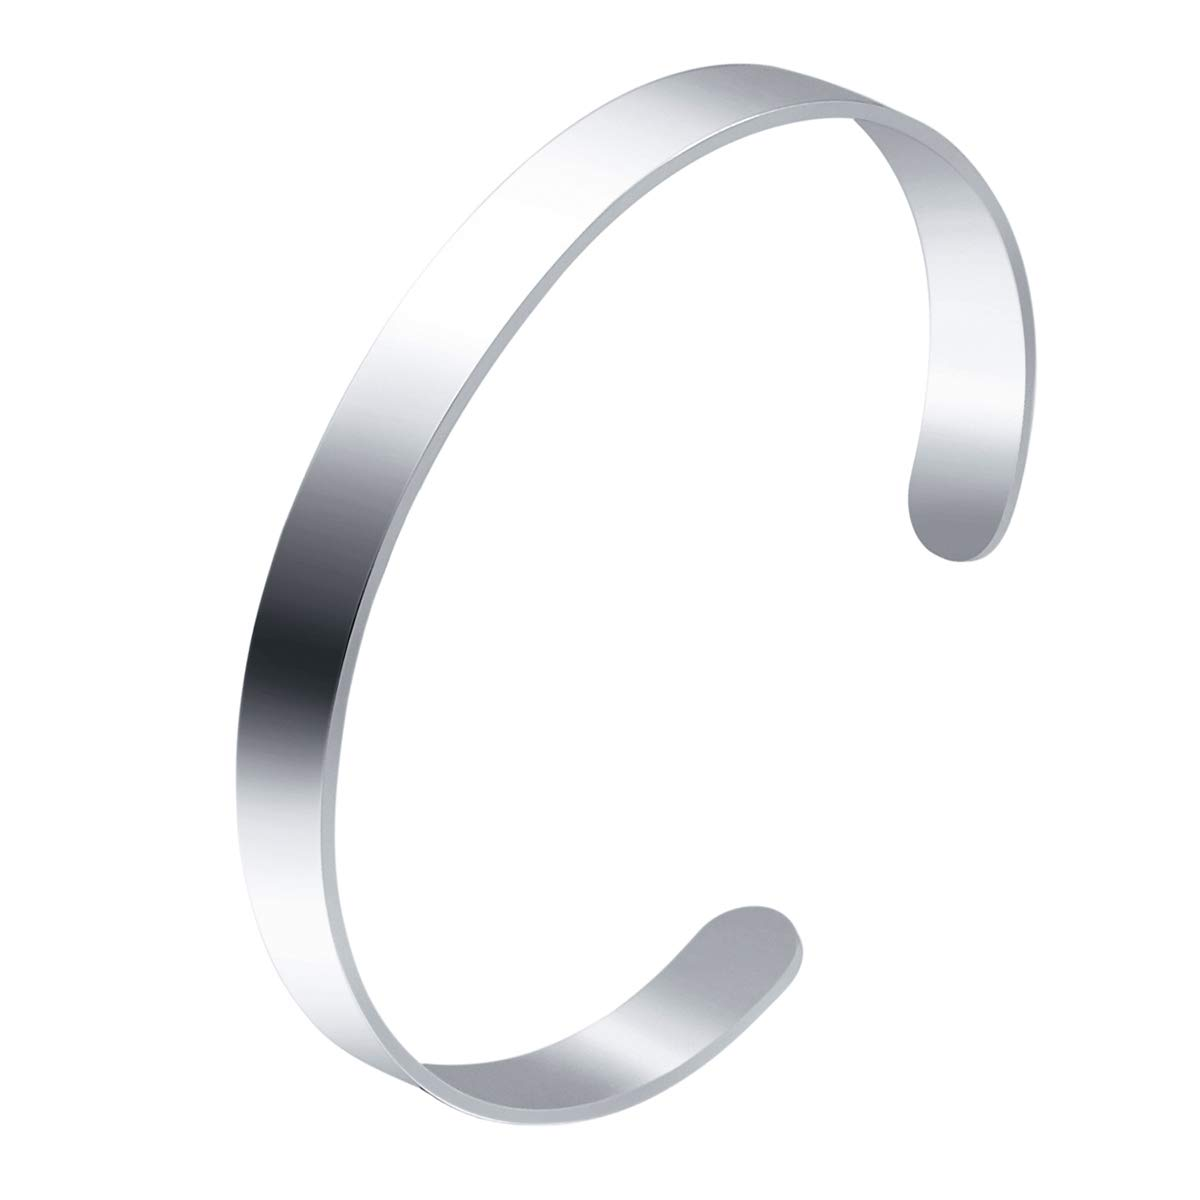 HooAMI 8mm Stainless Steel High Polished Open Cuff Bangle Bracelet Jewelry Unisex